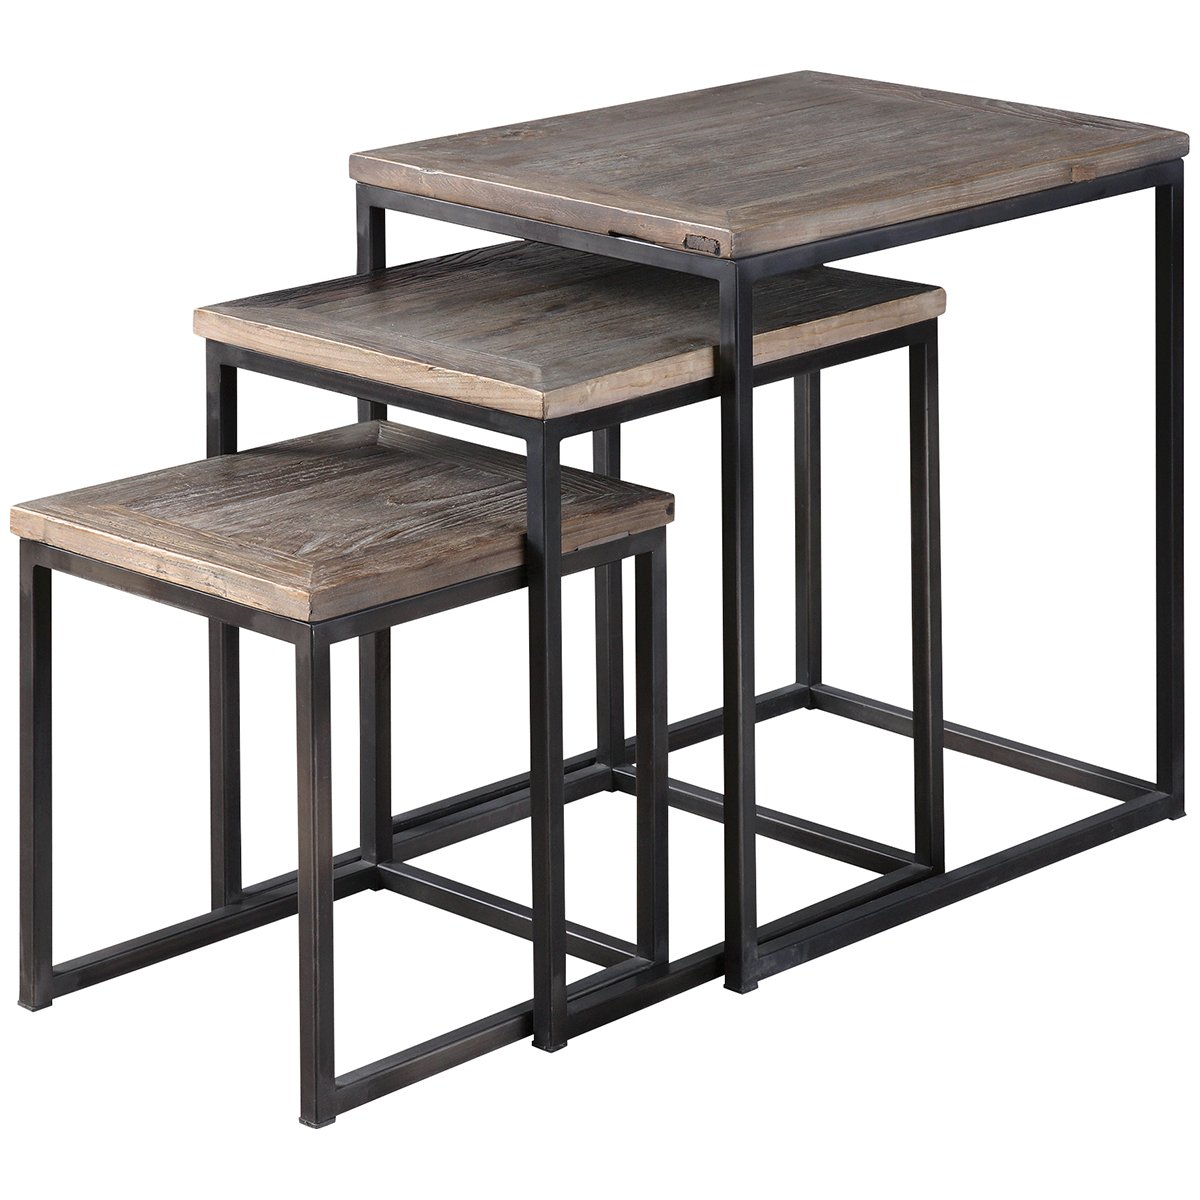 Amazon.com Uttermost 24460 Bomani Wood Nesting Tables (Set of 3) Kitchen u0026 Dining  sc 1 st  Amazon.com & Amazon.com: Uttermost 24460 Bomani Wood Nesting Tables (Set of 3 ...